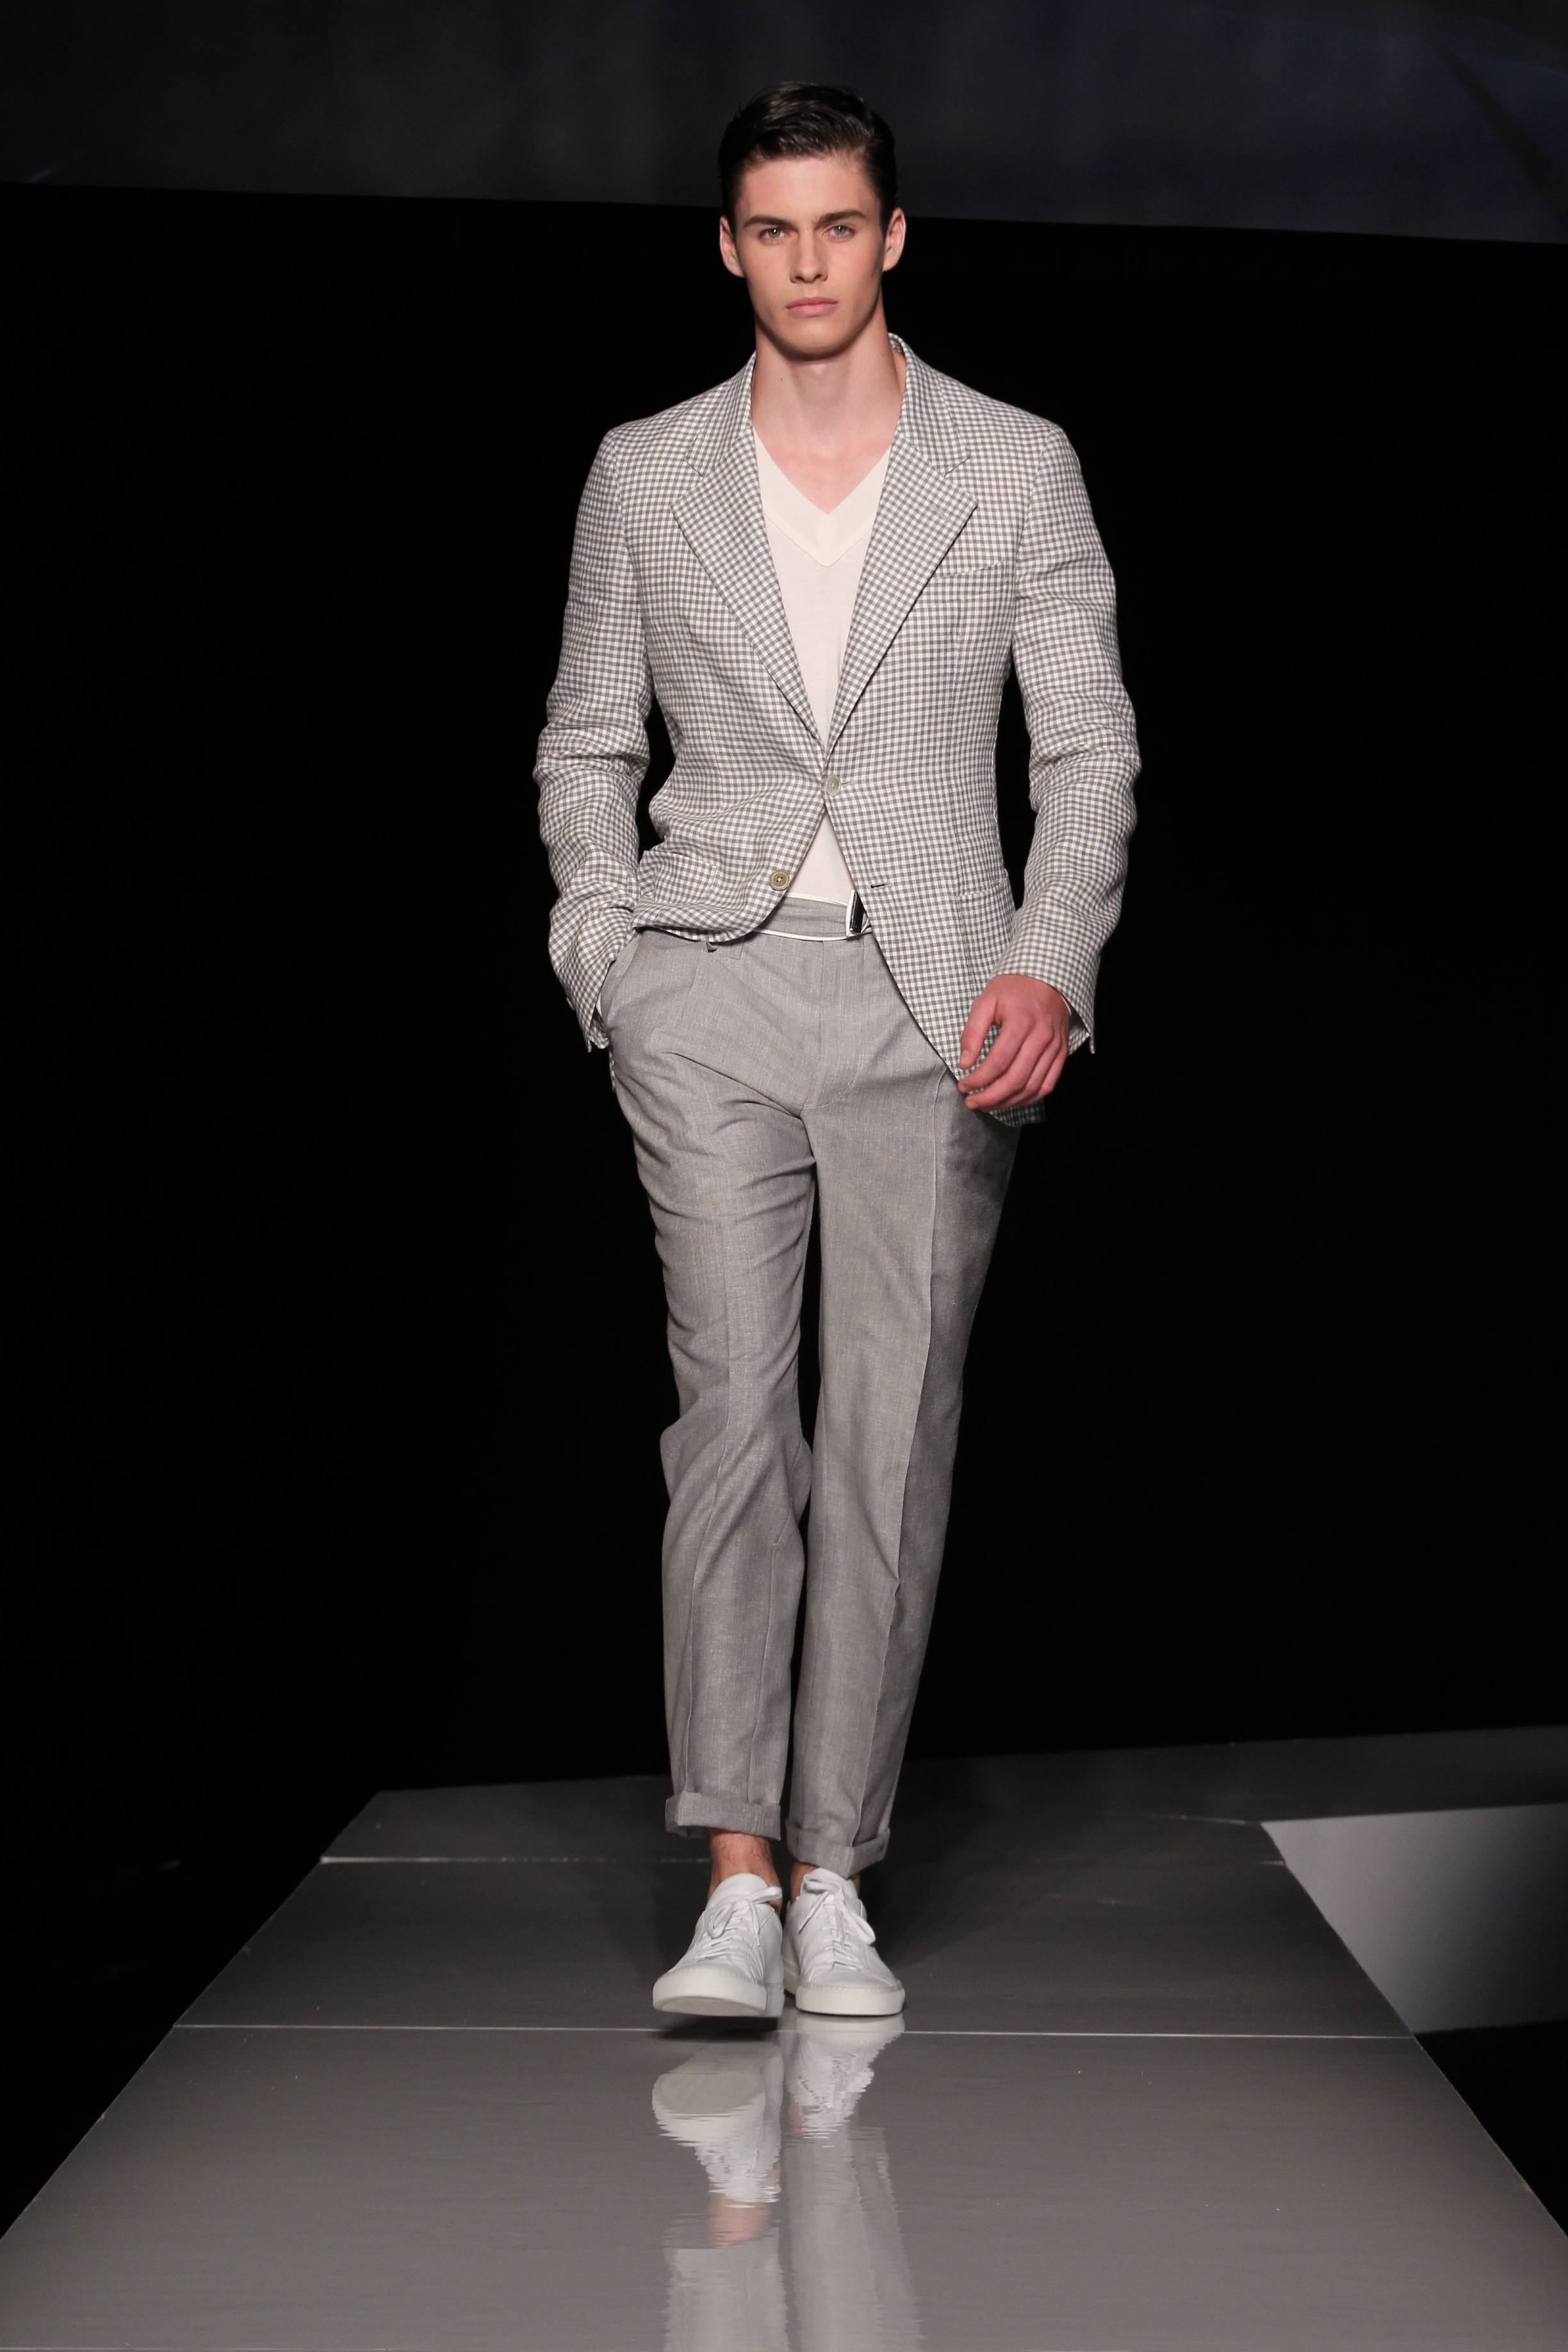 LOOK 5 Bernardo Rojo for Joseph Abboud Spring/Summer 2013 Collection